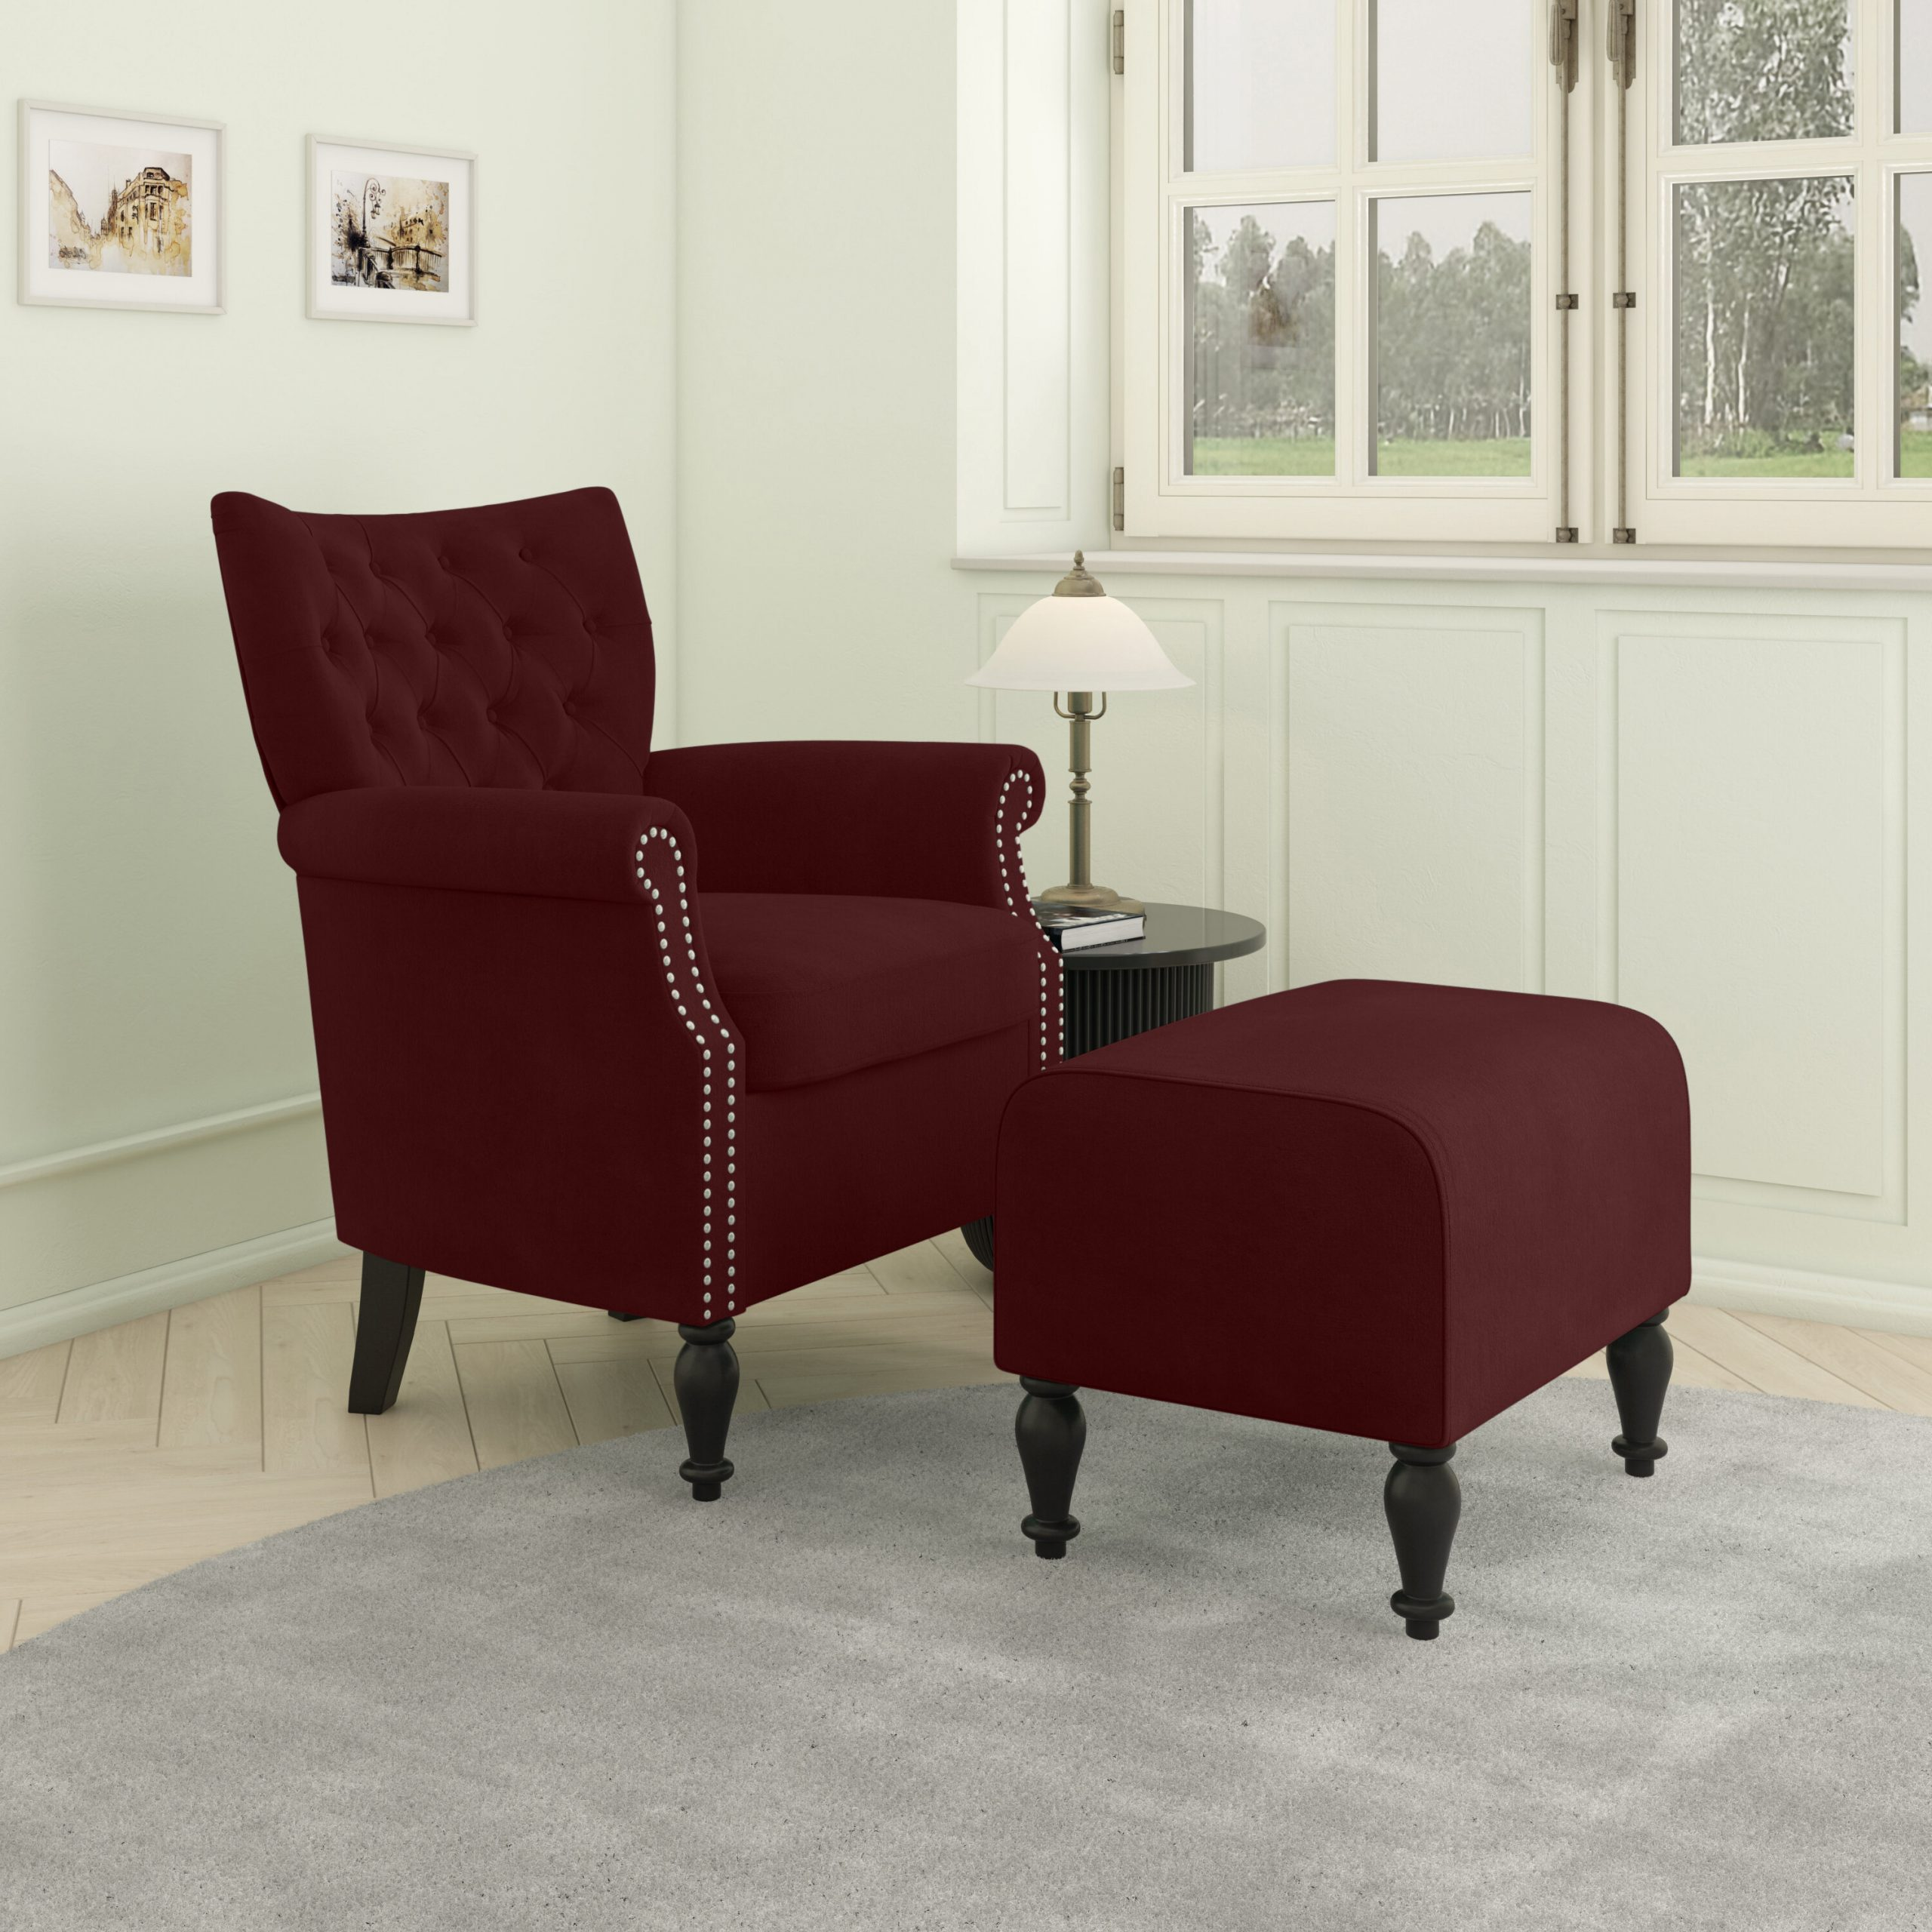 Brassfield Armchair And Ottoman Regarding Akimitsu Barrel Chair And Ottoman Sets (View 3 of 15)